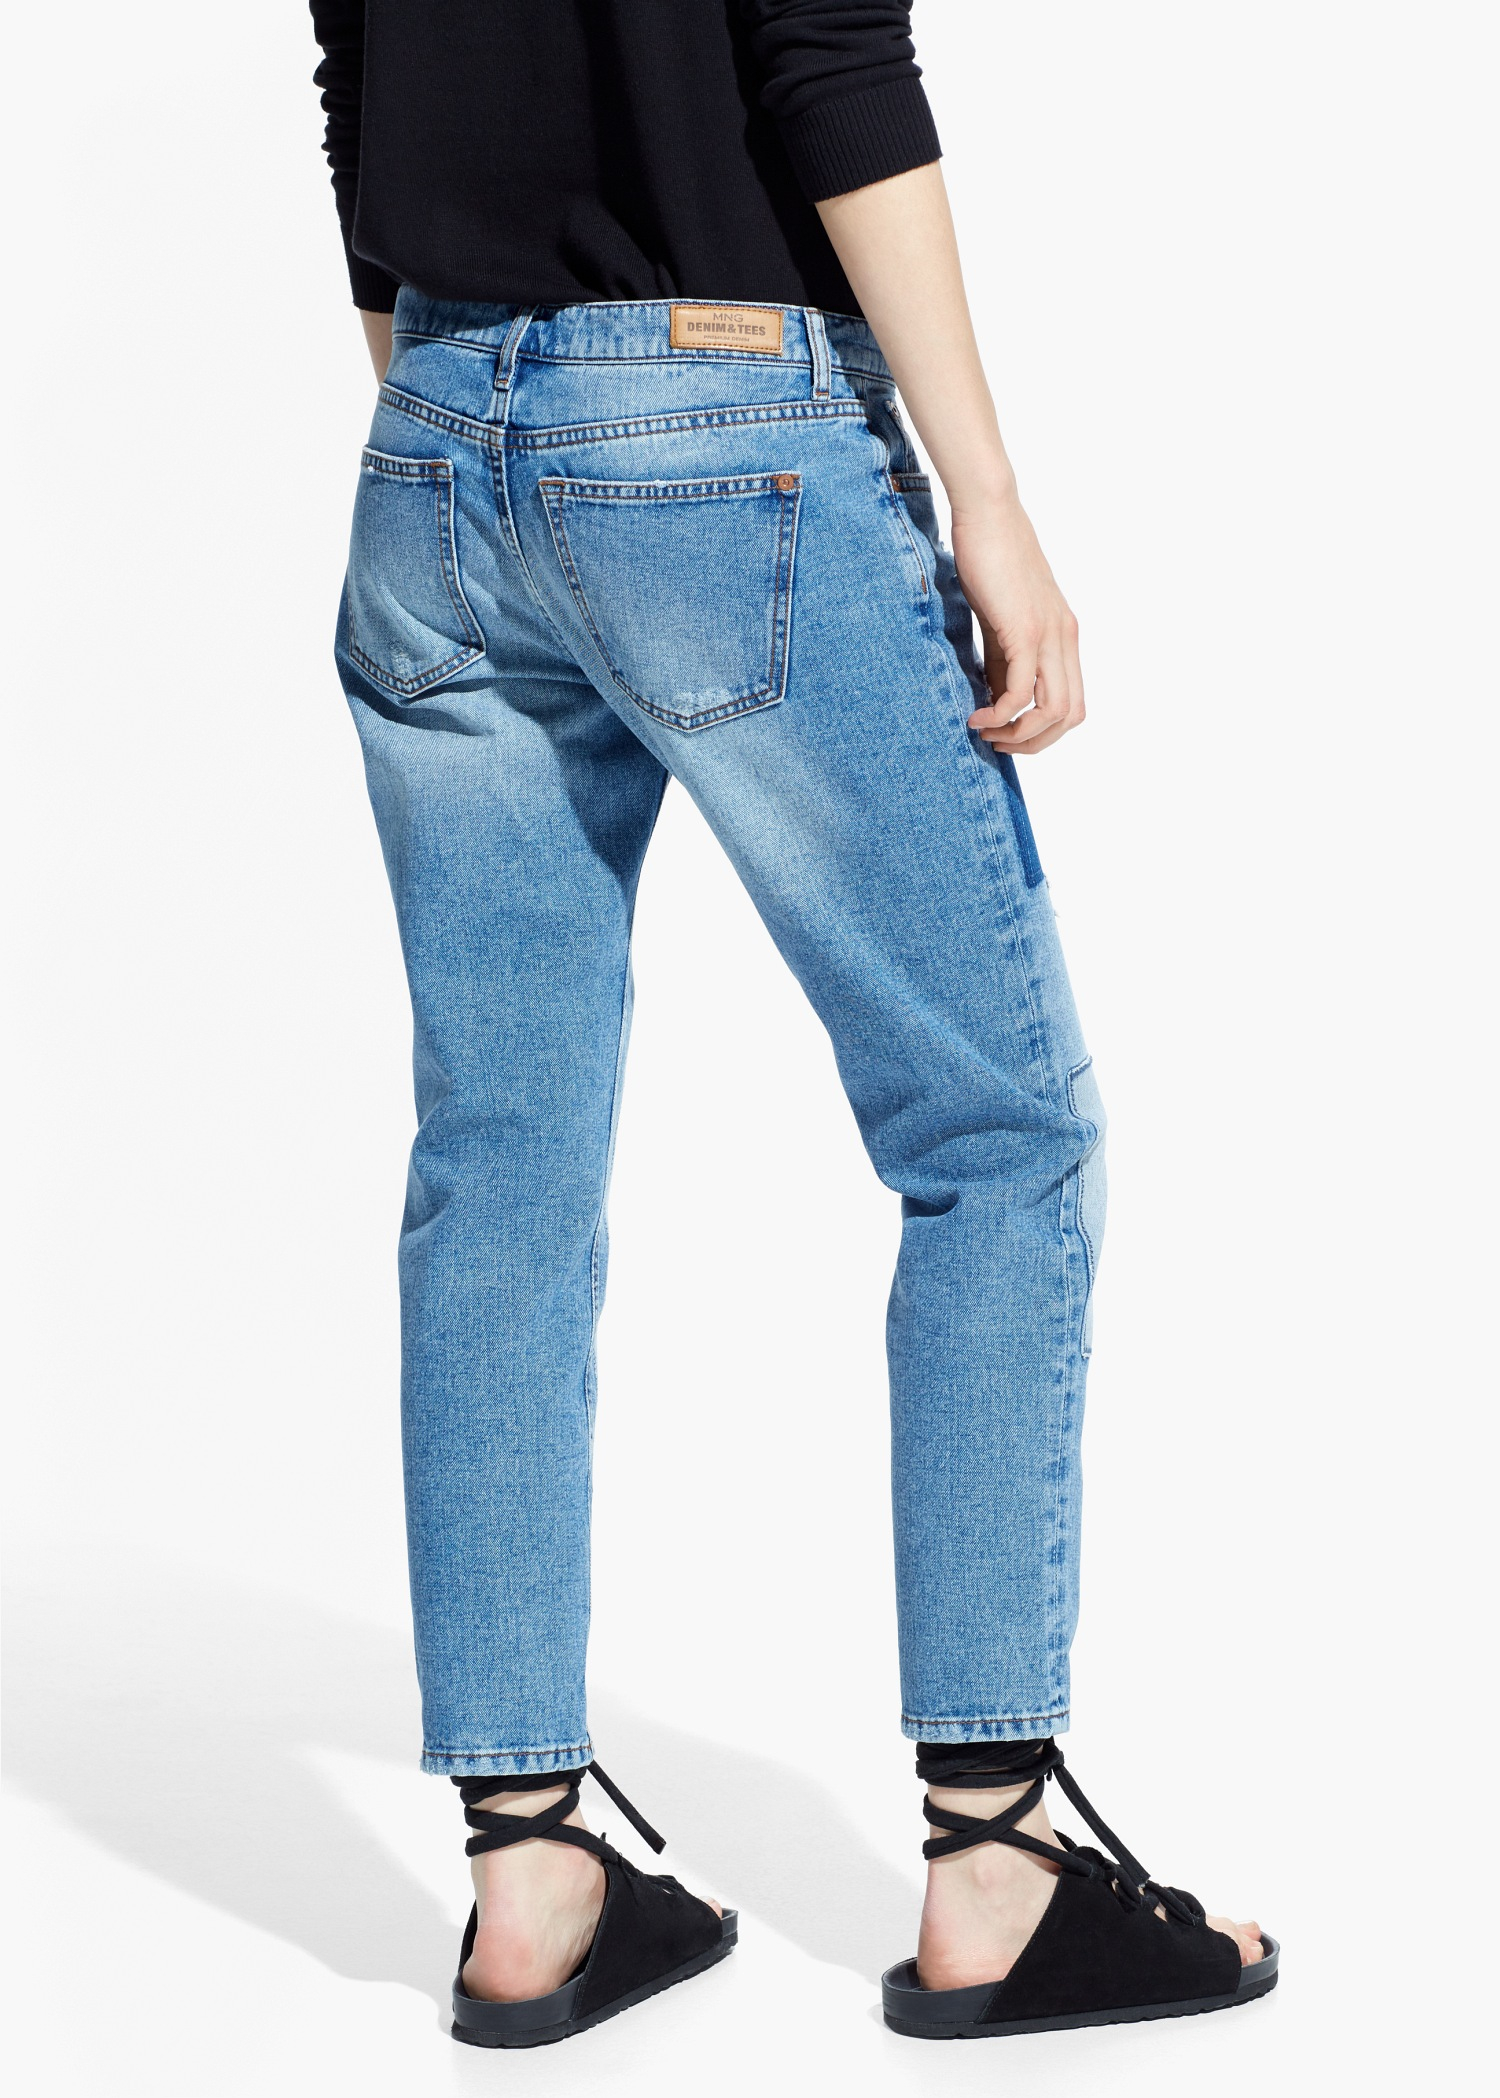 Lyst - Mango Slim-Fit Nancy Jeans in Blue 0d83a75a9